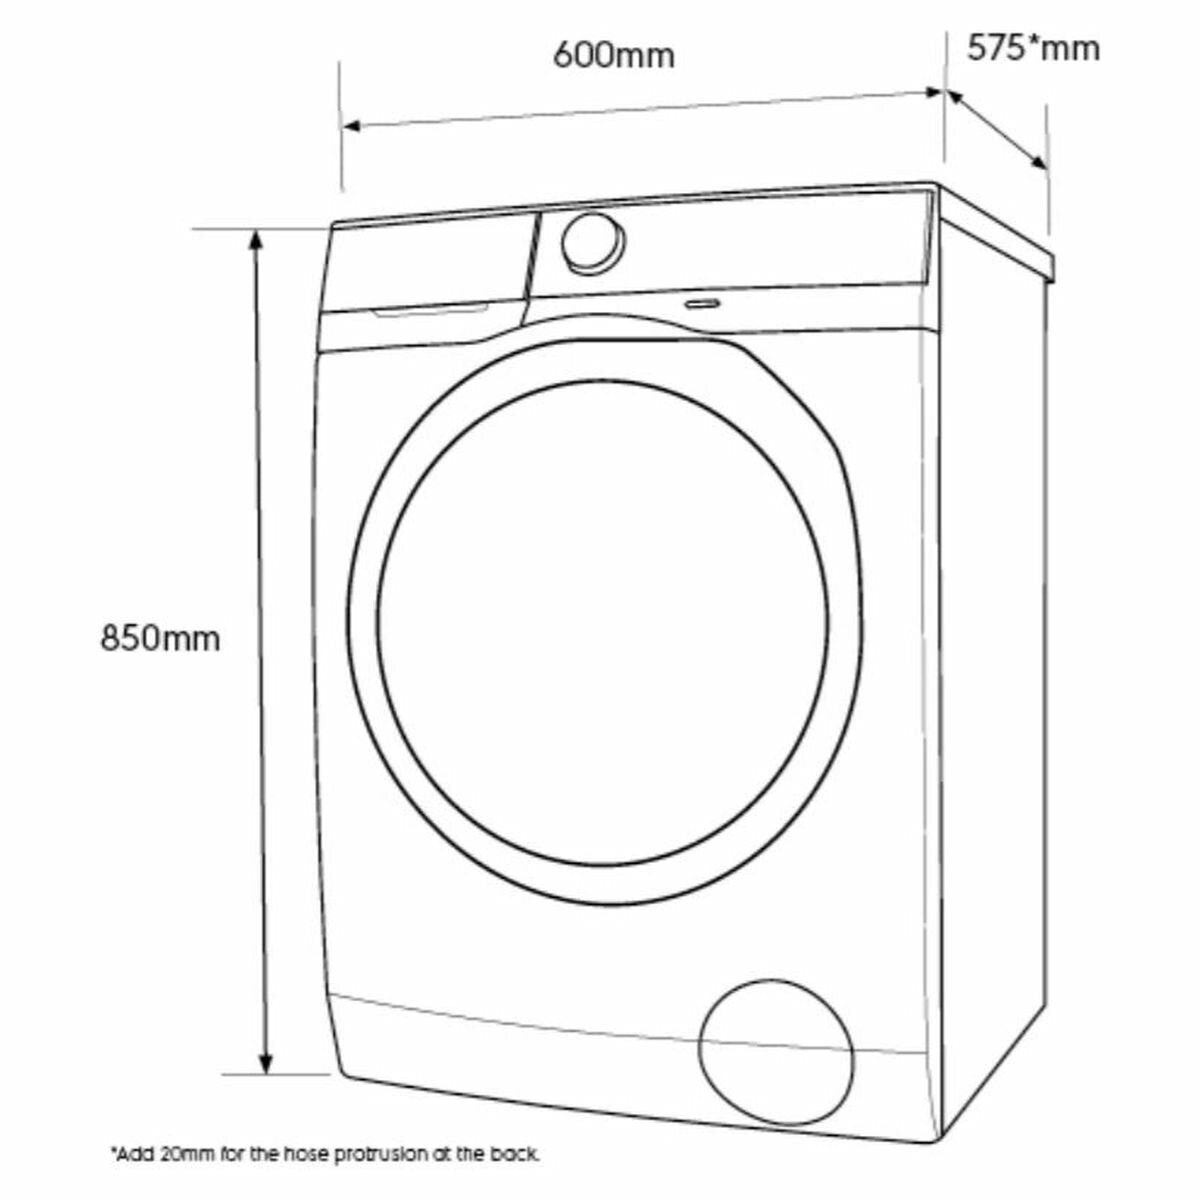 Electrolux Washer Dryer Combo 7.5 KG/4.5 KG - Brisbane Home Appliances